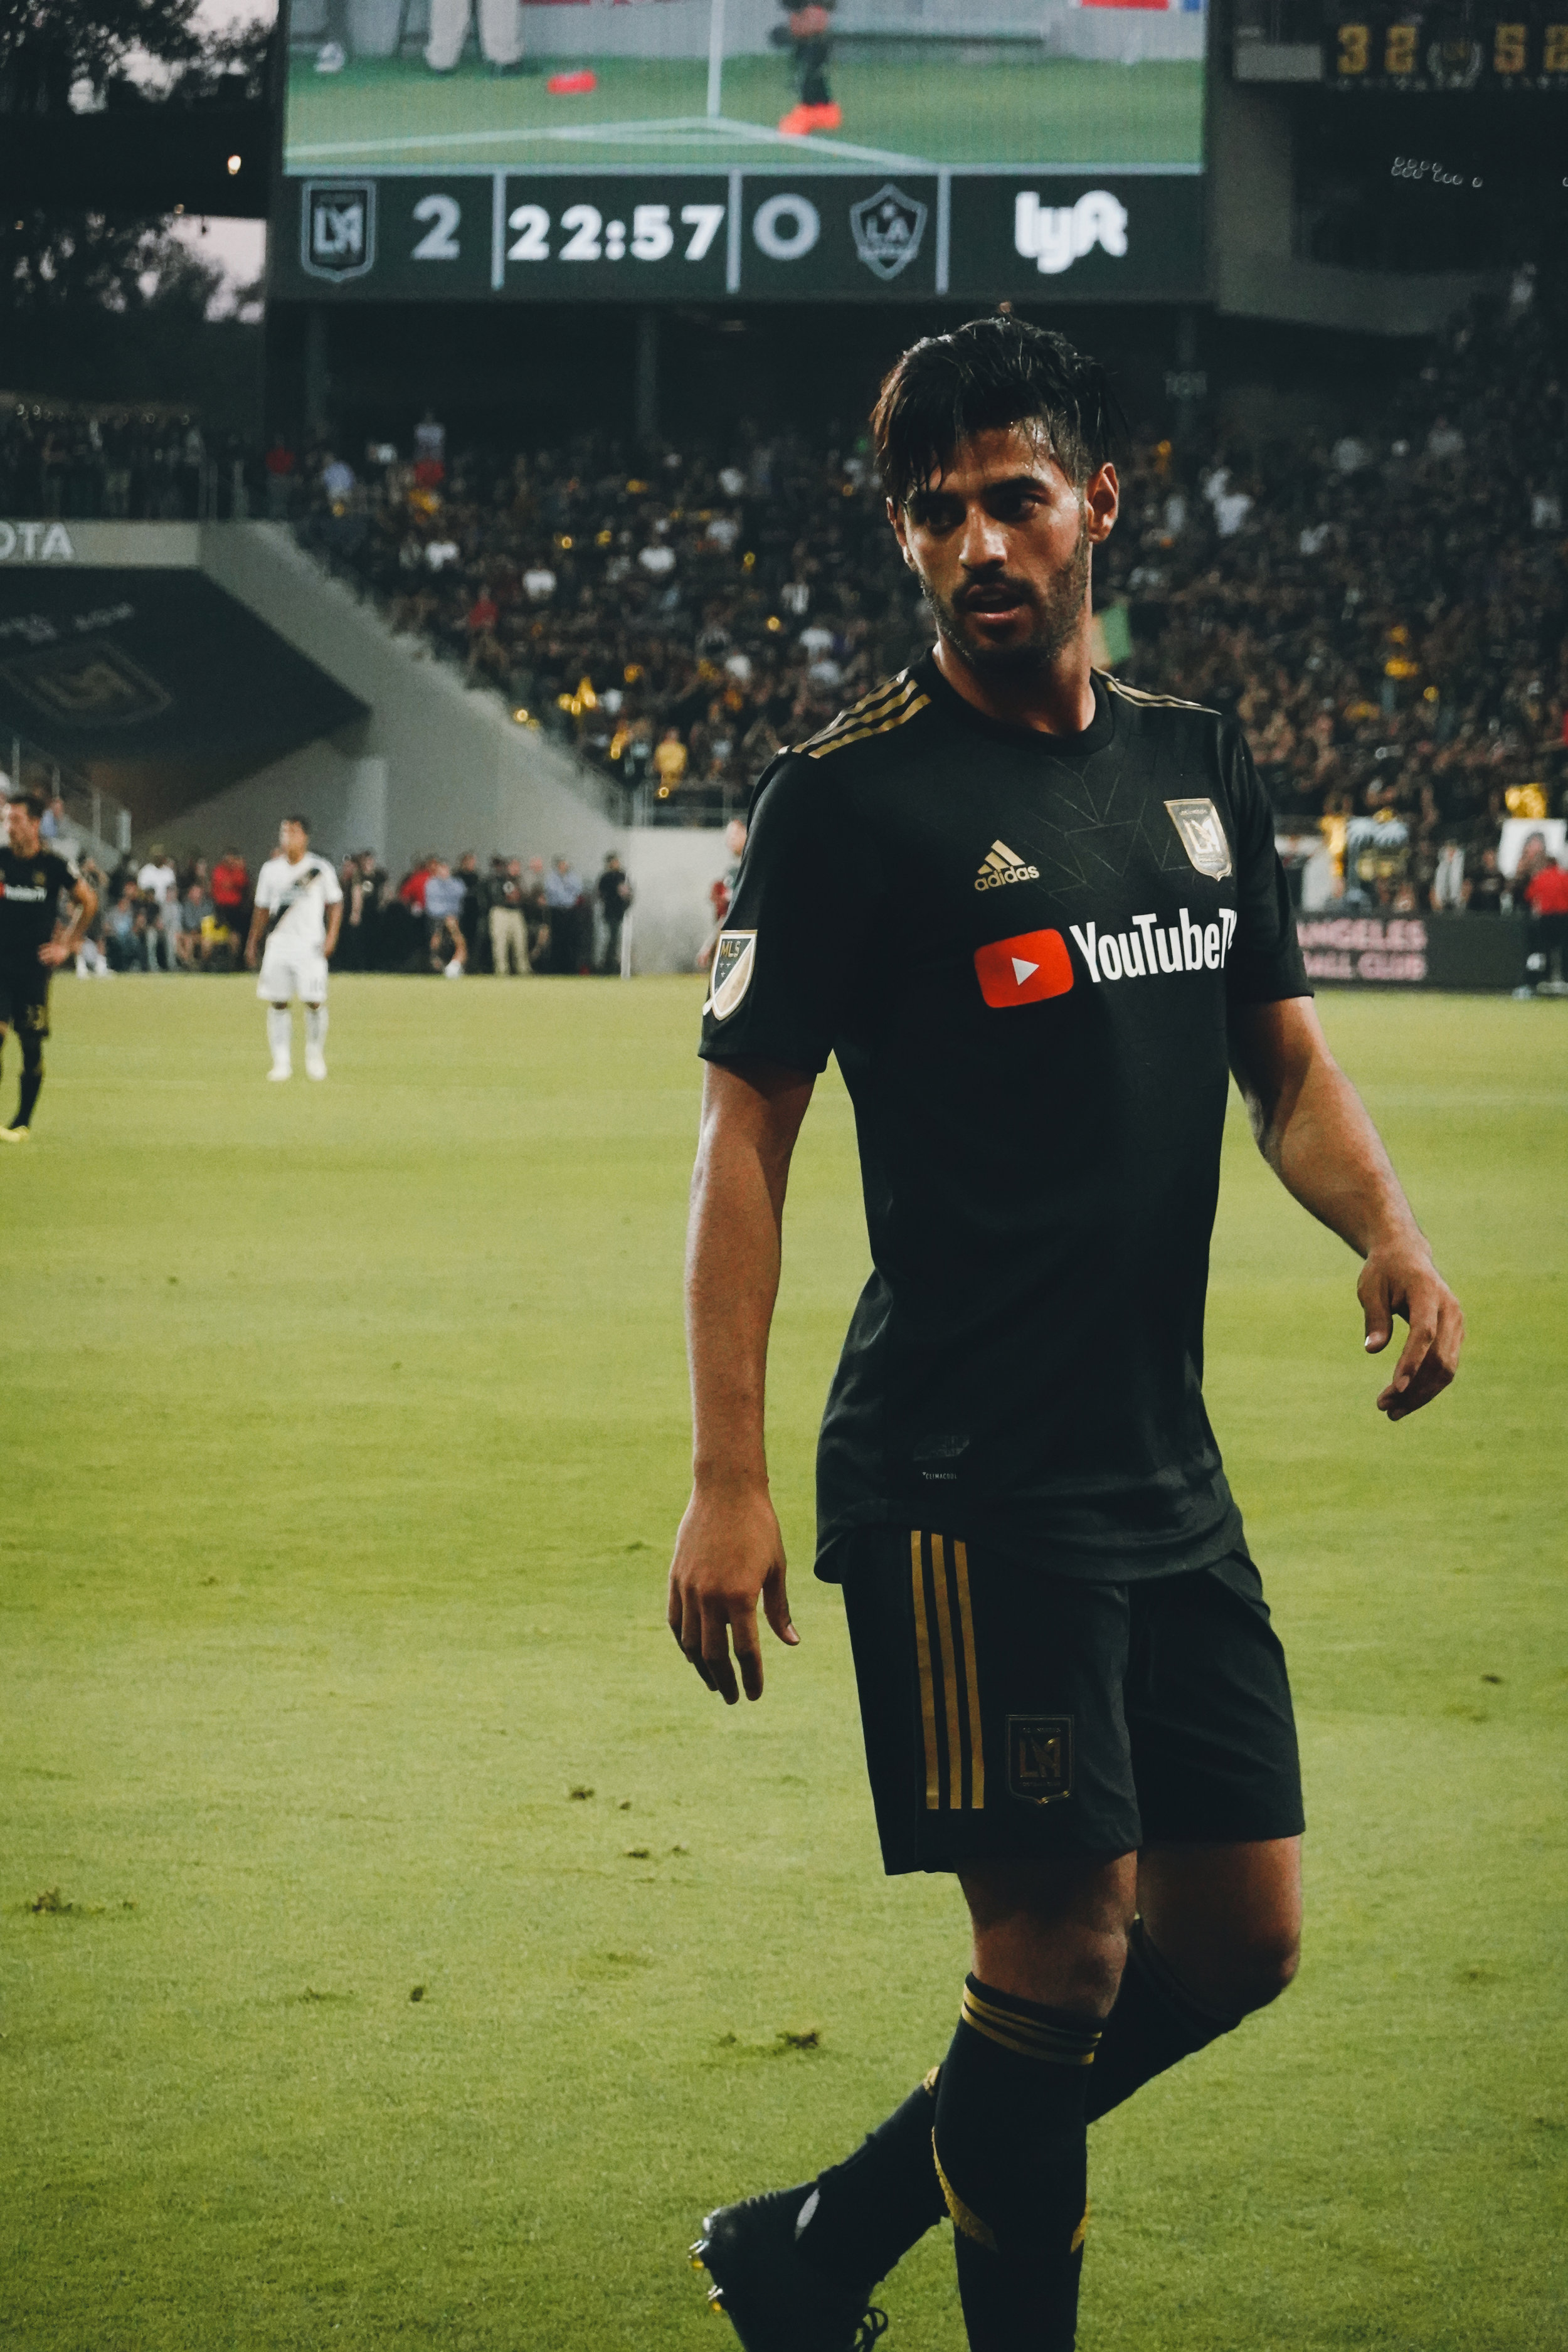 Carlos Vela plays in the first LA Derby game at Banc of California Stadium.